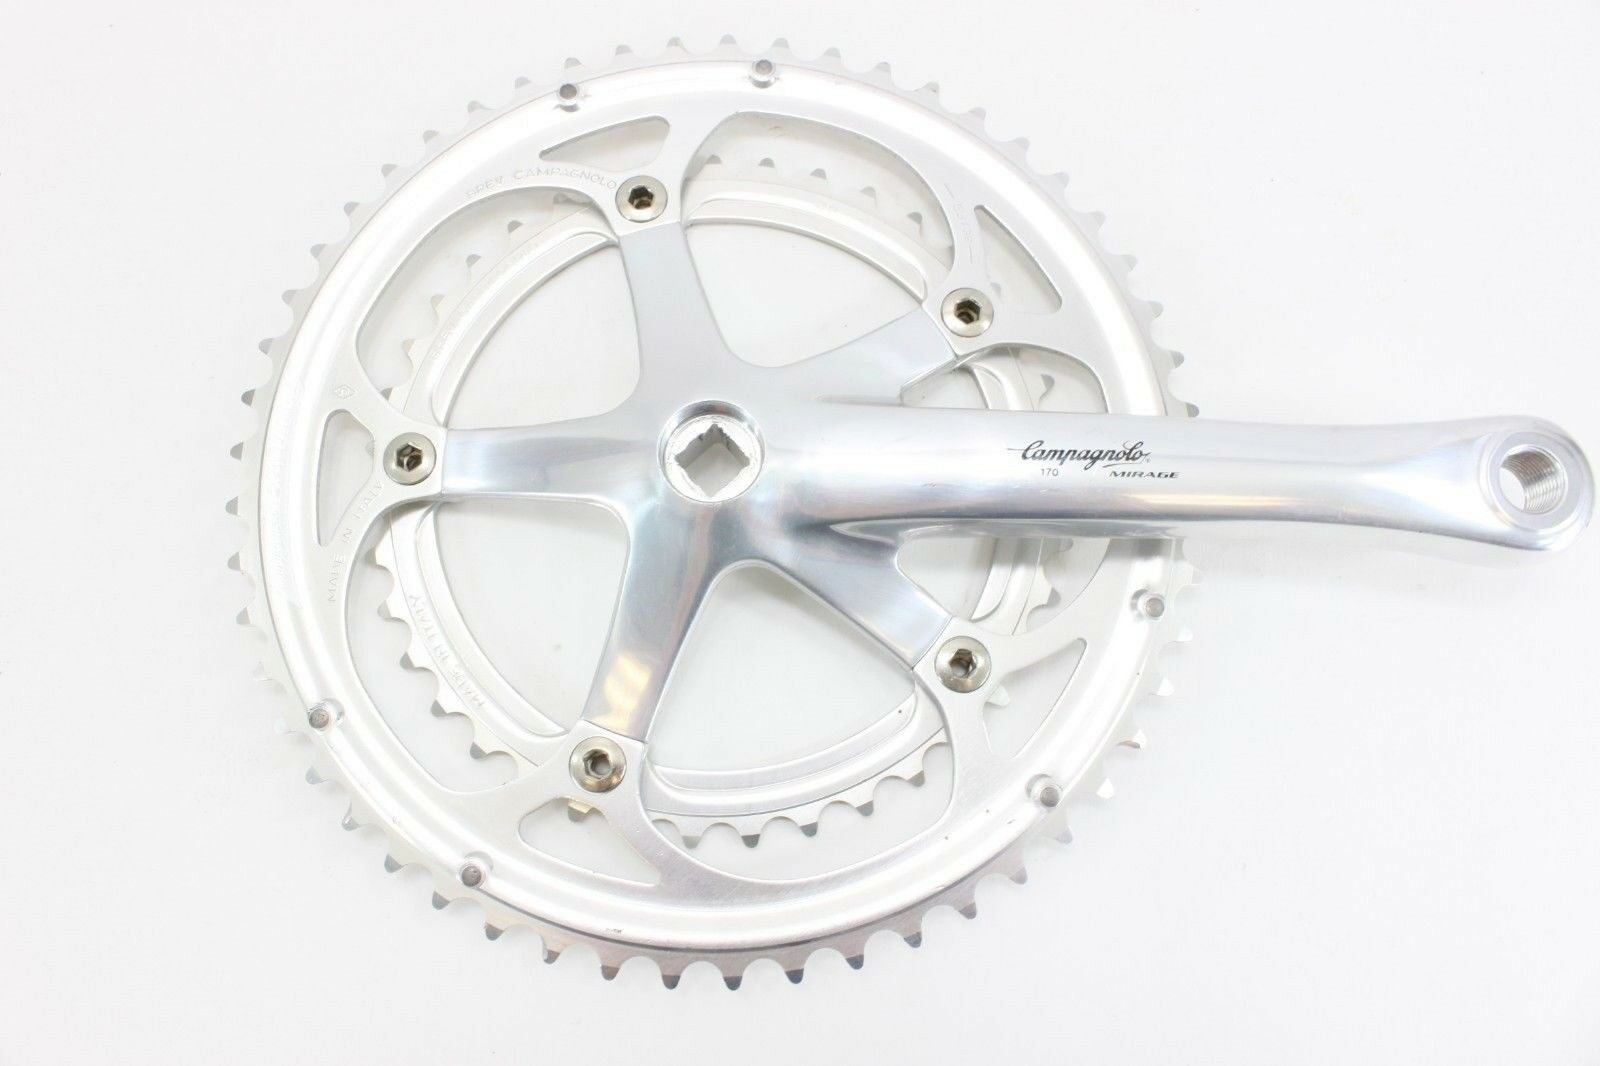 Campagnolo Mirage Double Drive Side 170mm Crank Arm w  Rings 53 39 BREV. NOS